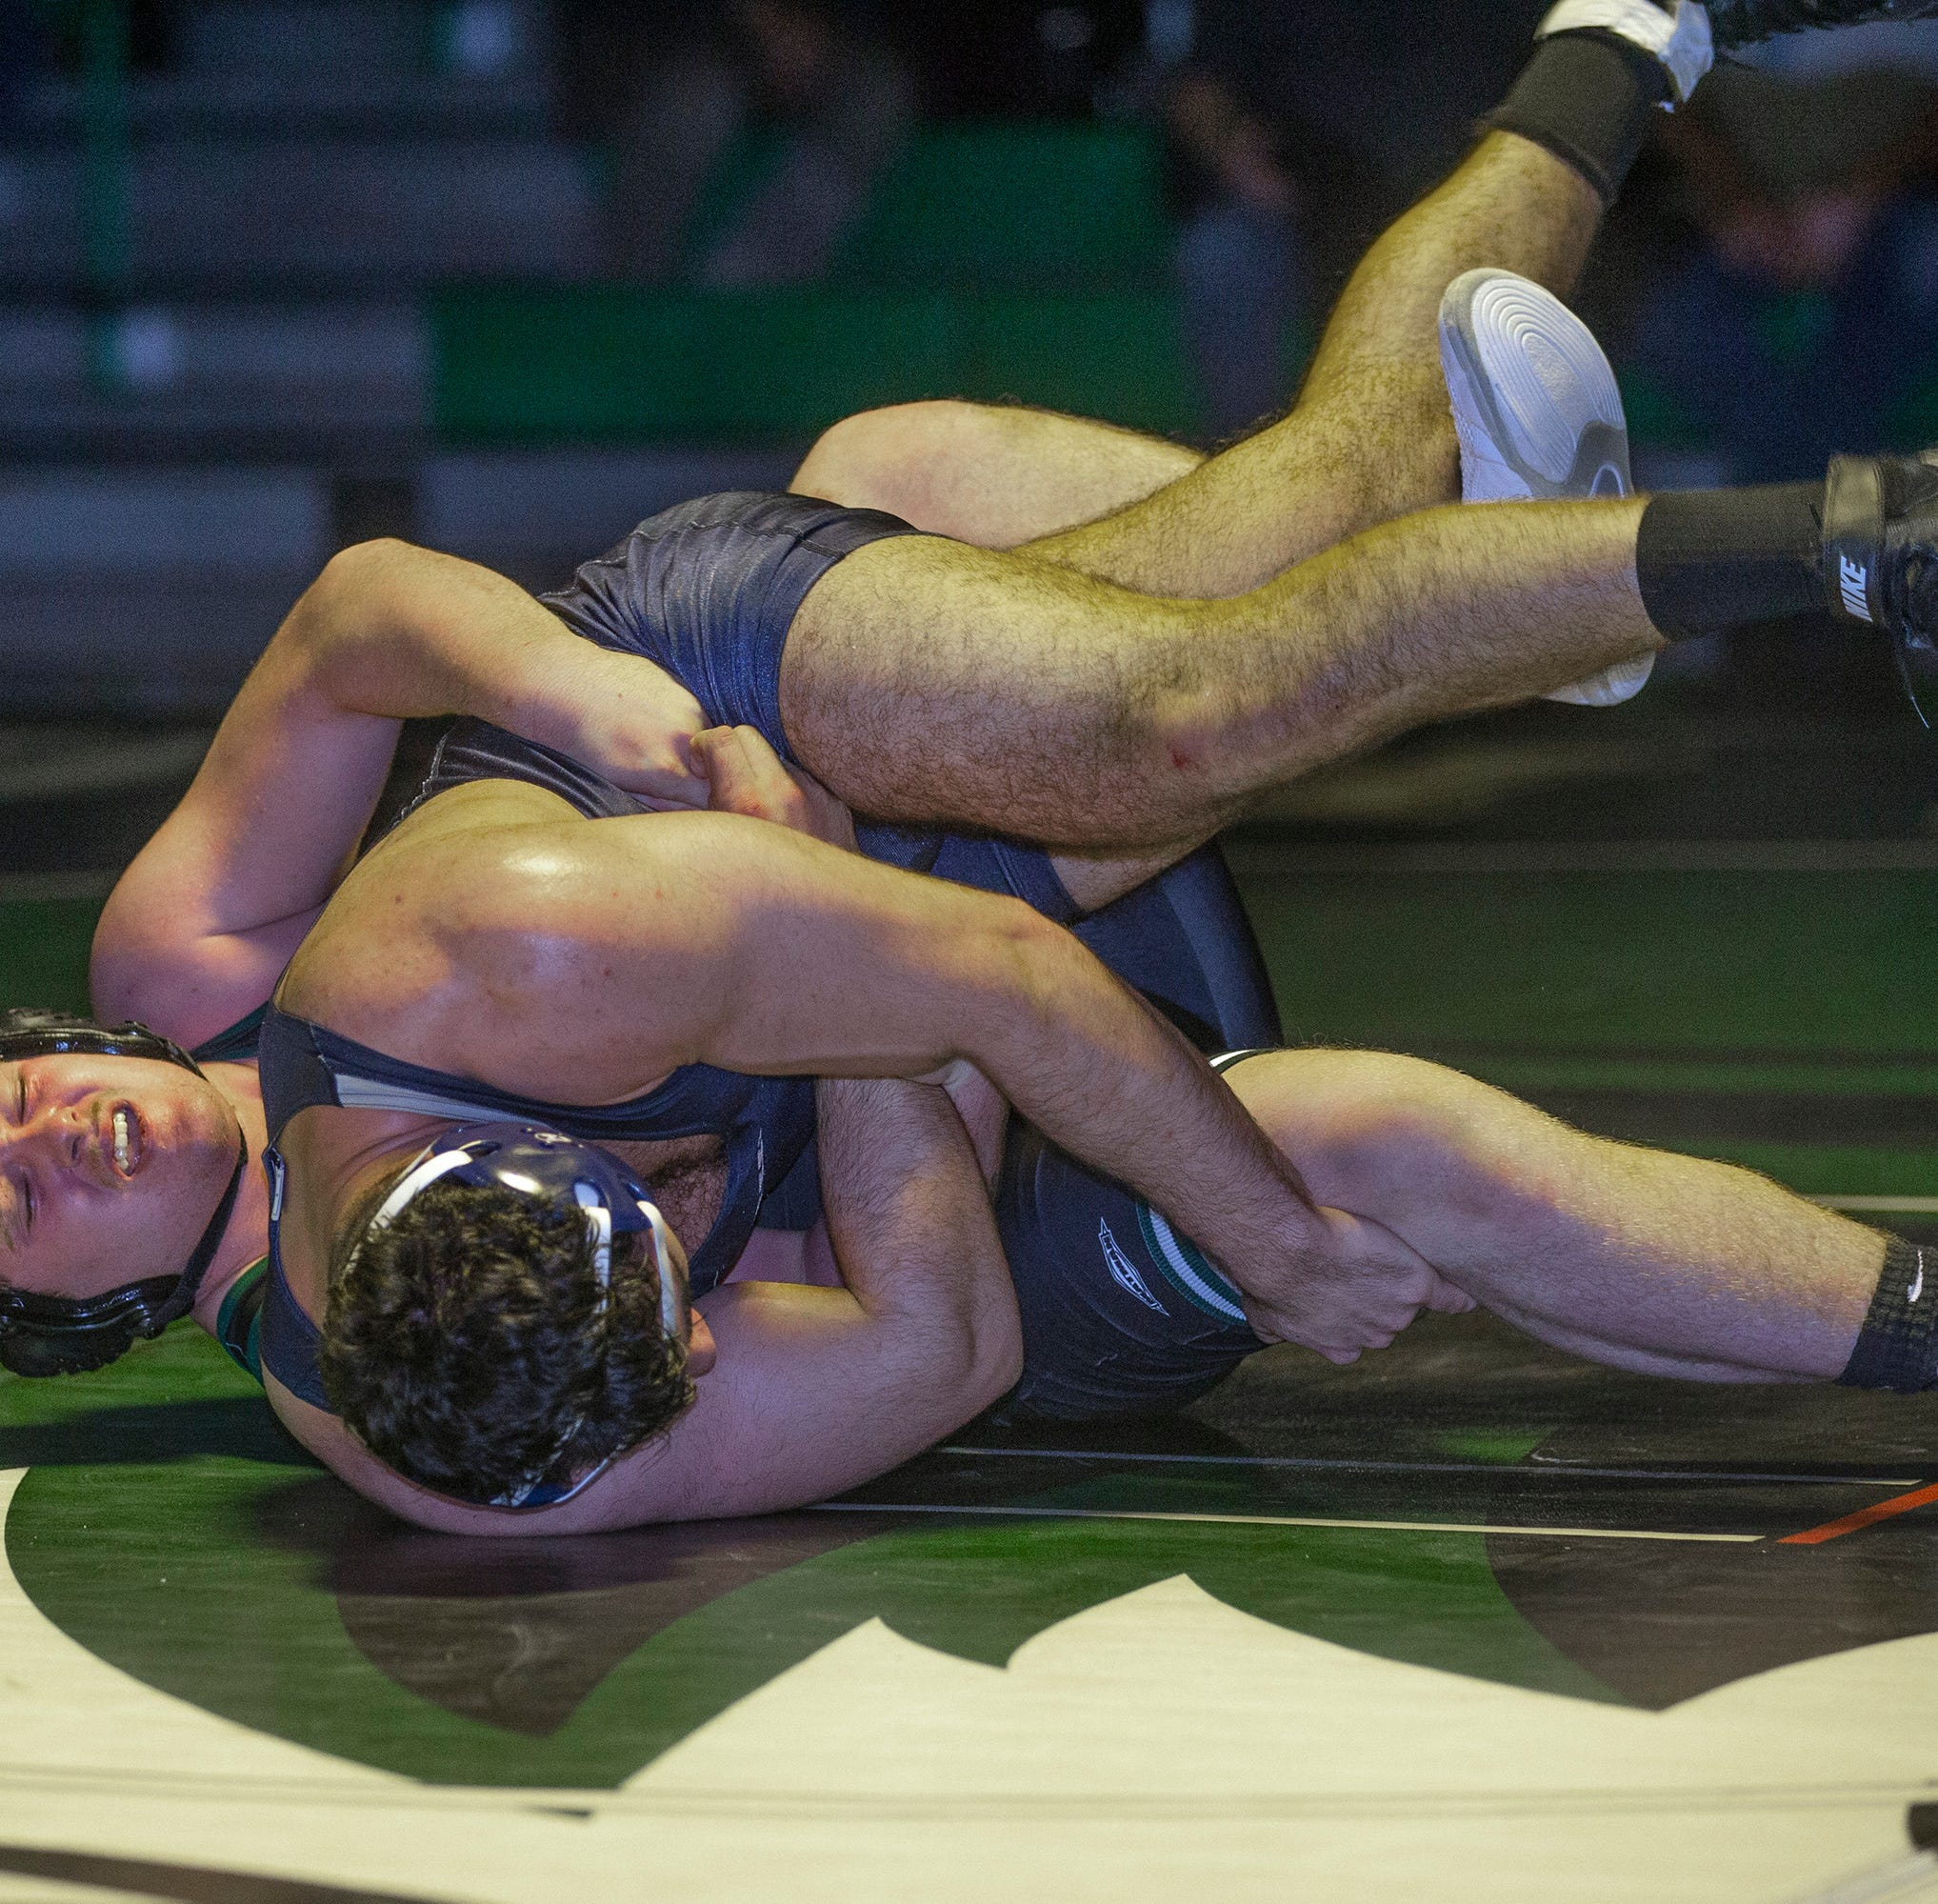 NJ wrestling: Howell holds on for 30-28 thriller over South Plainfield